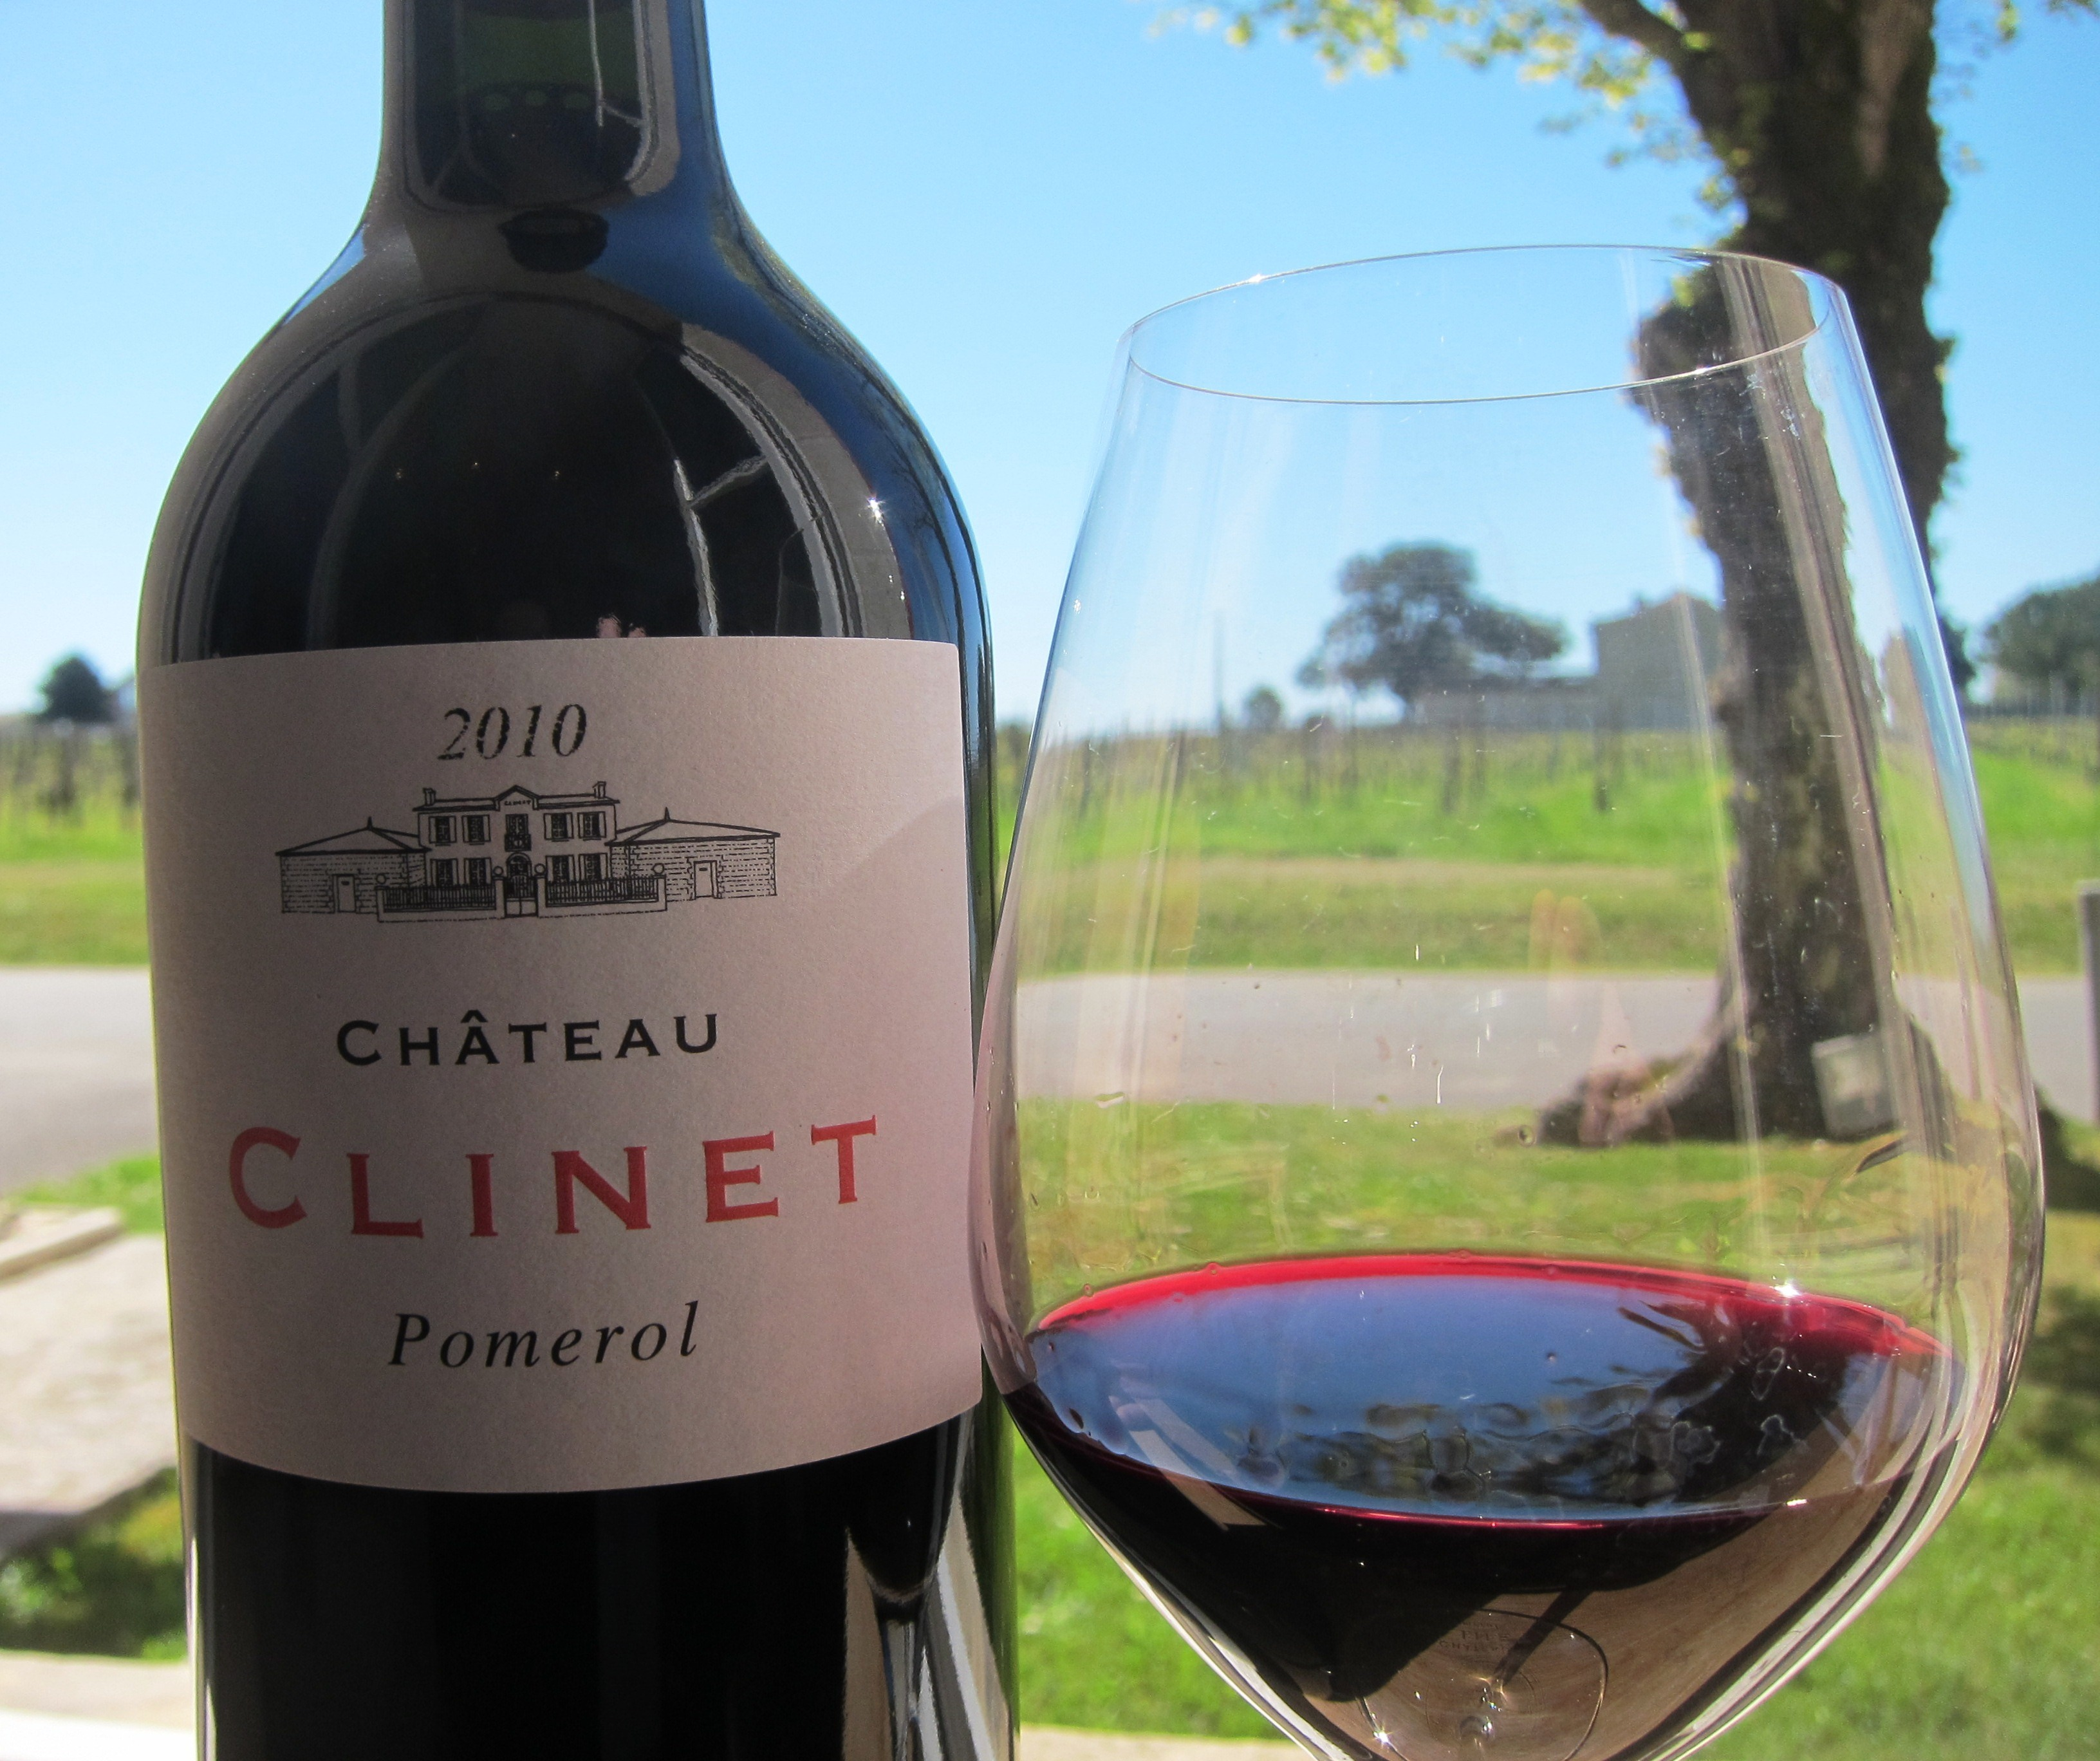 2010 clinet pomerol bordeaux